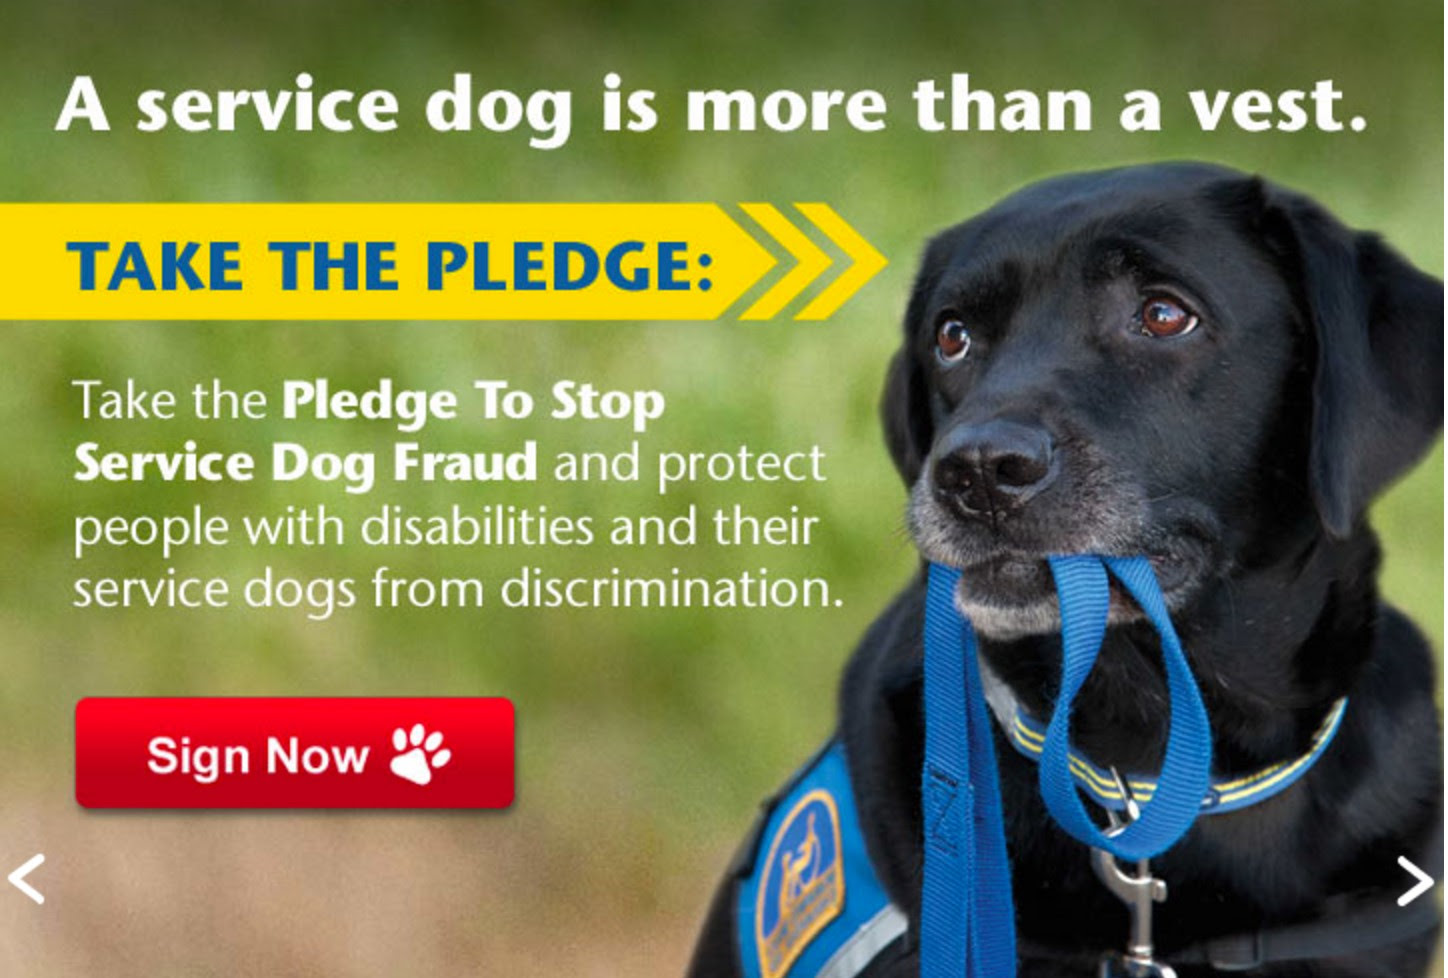 Photo credit: Canine Companions for Independence